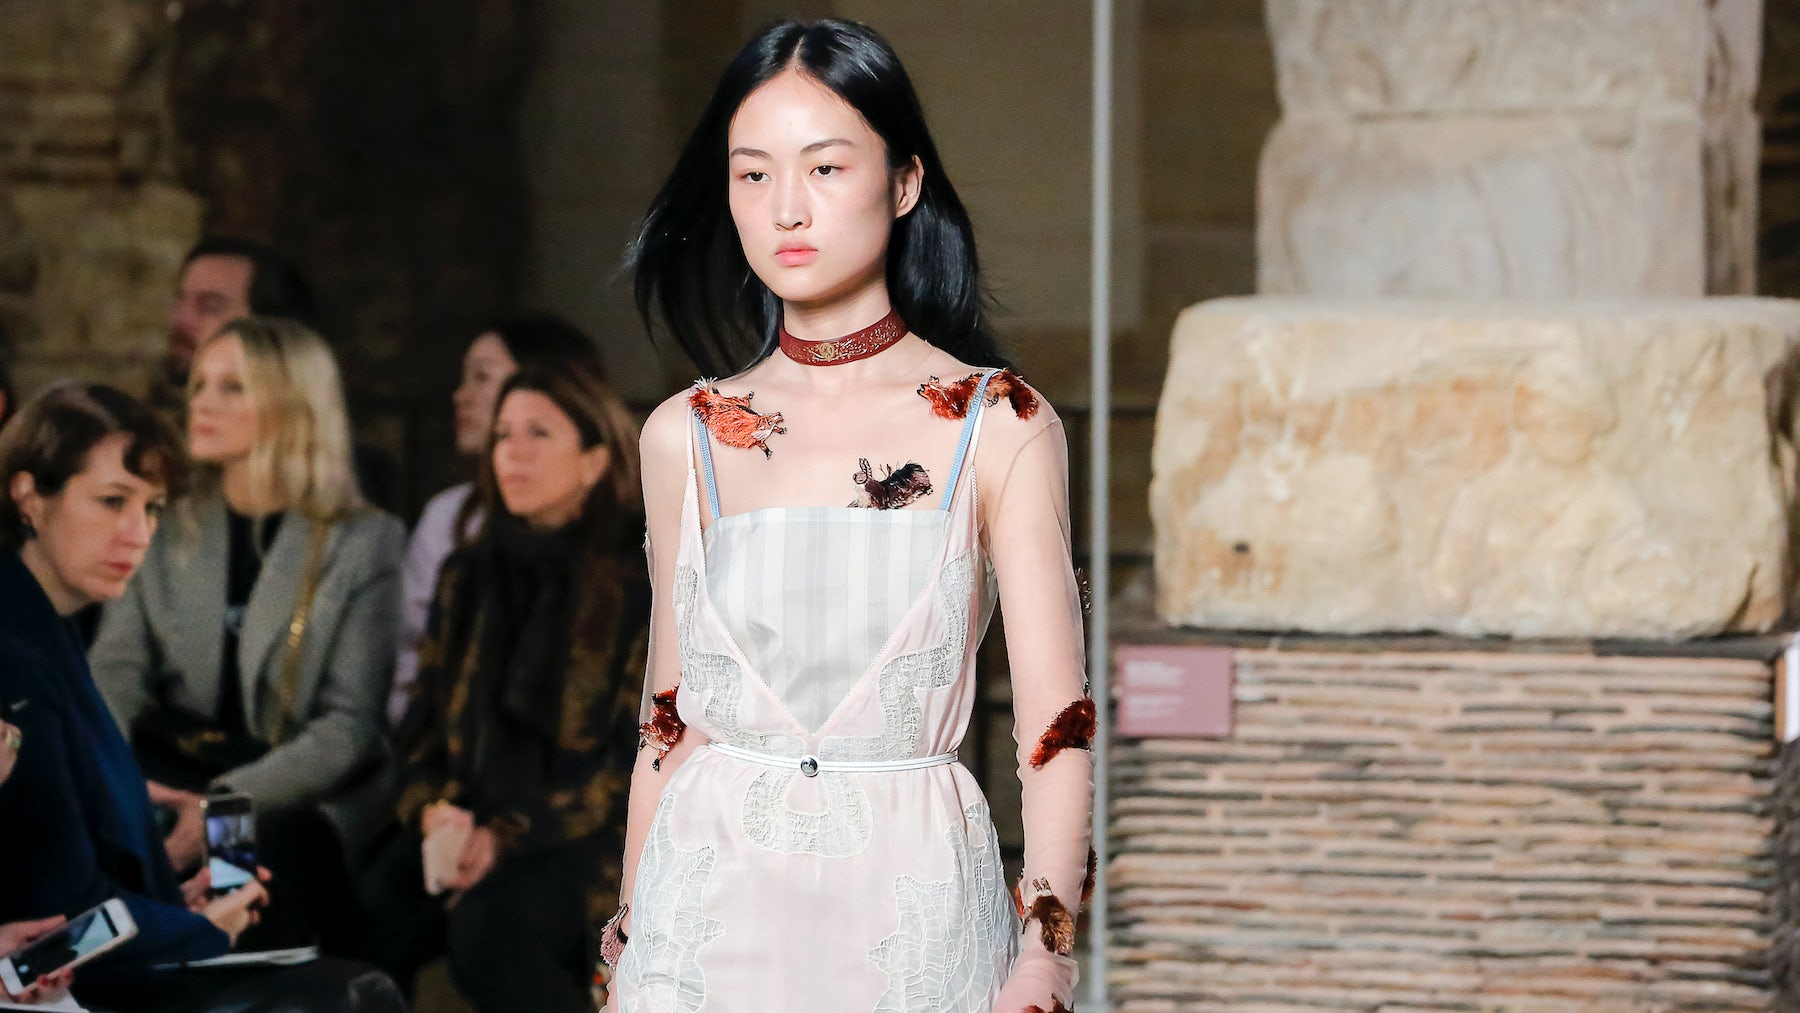 Chinese Investors Woo European Brands. It's Complicated.